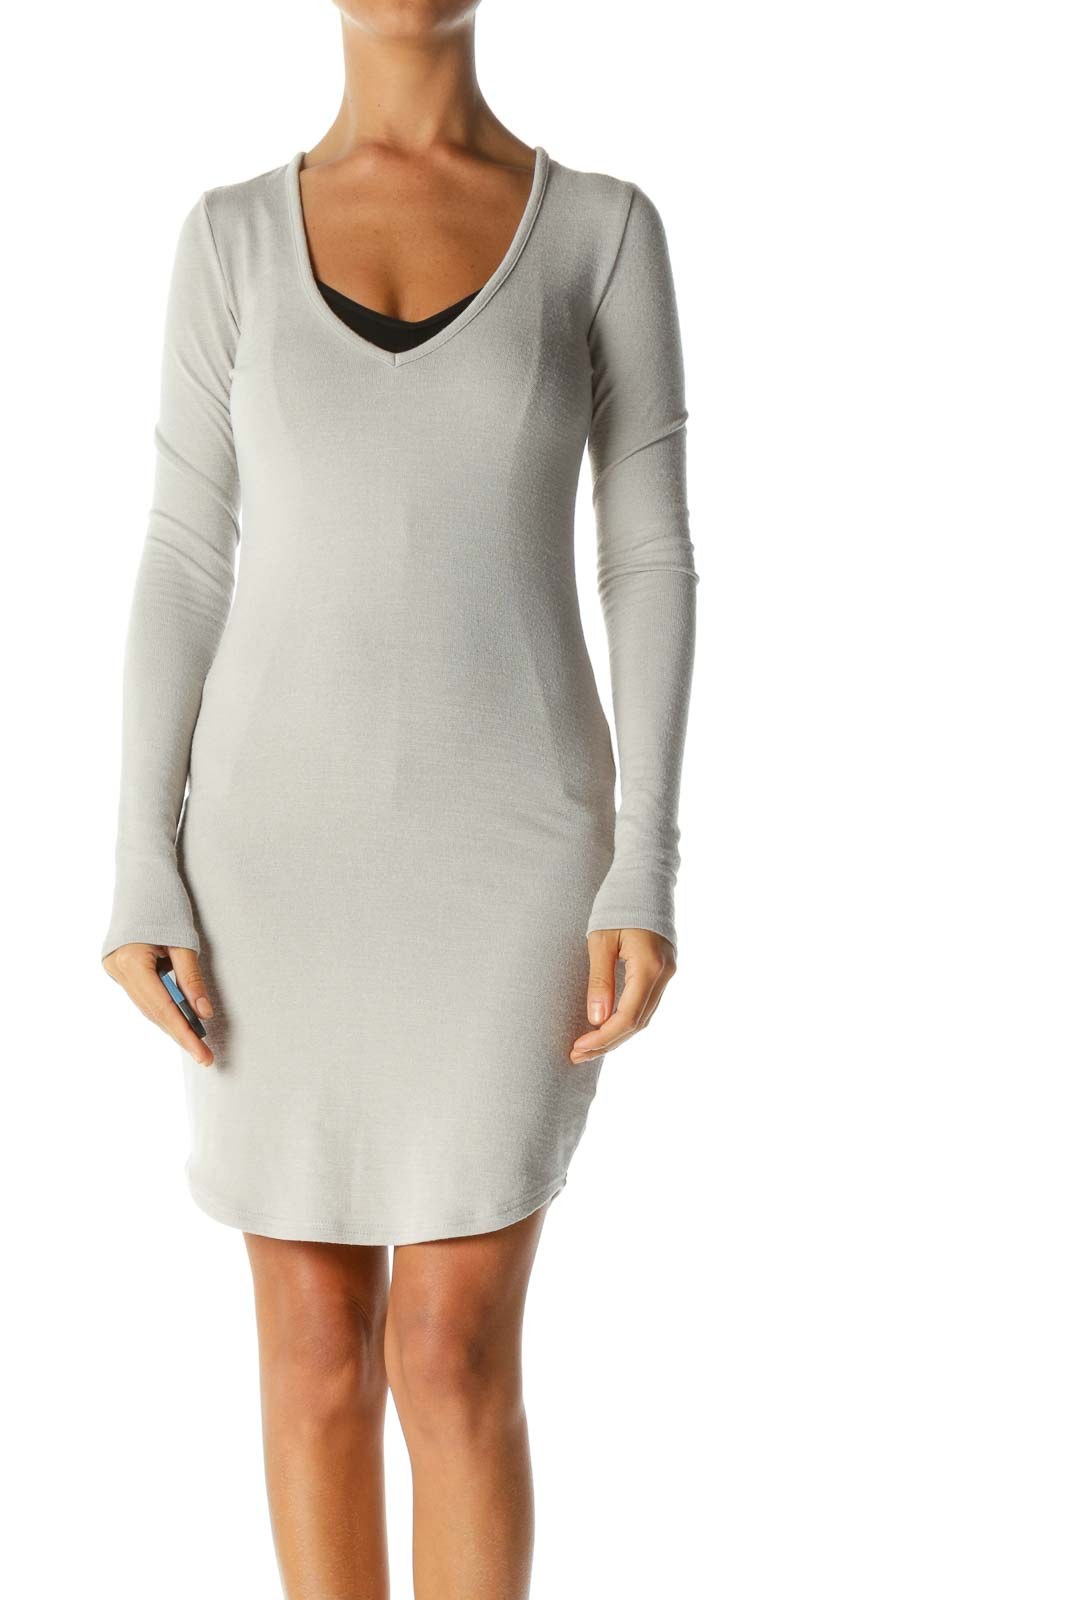 Beige V-Neck Stretch Long-Sleeve Knit Dress